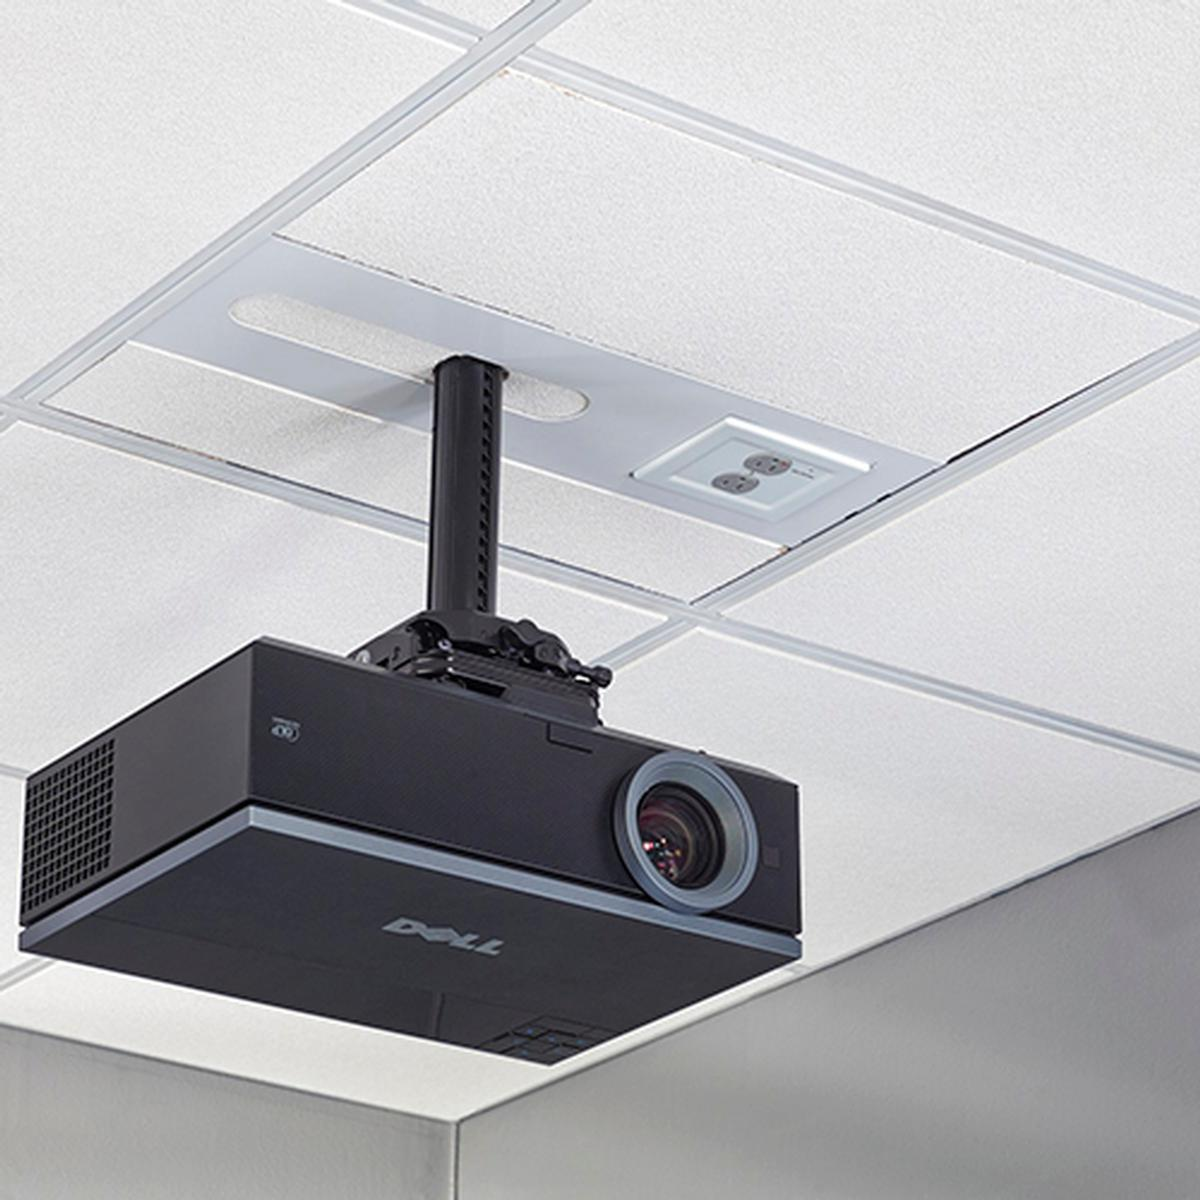 Chief Sysaubp2 Suspended Ceiling Projector System W 2